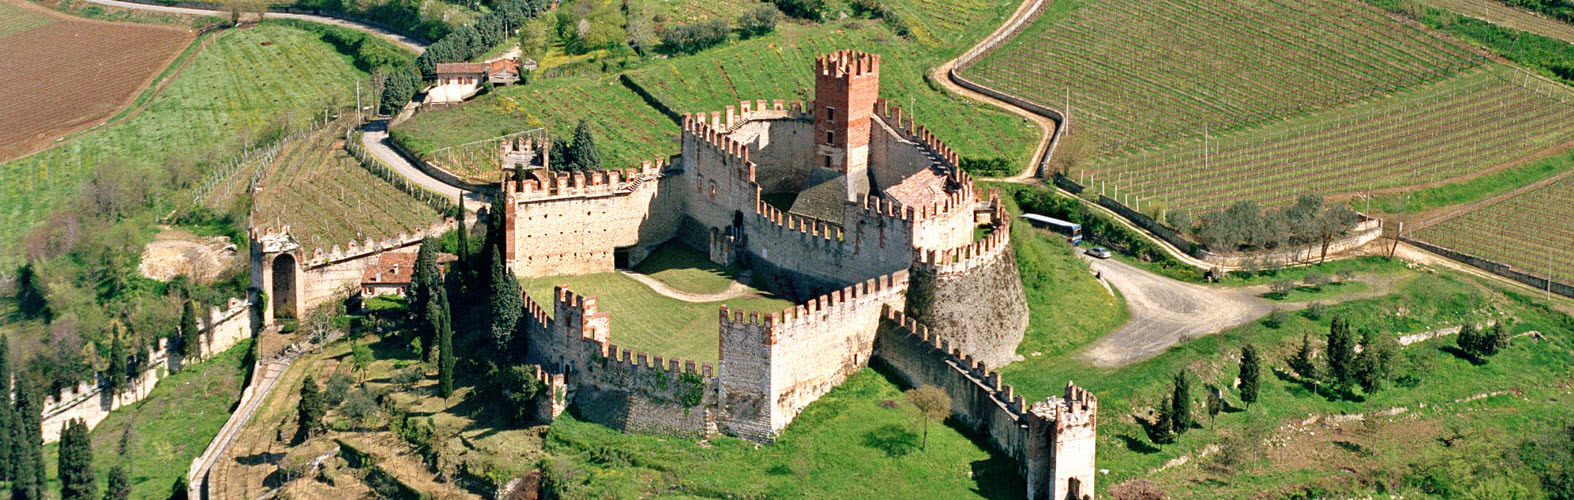 The Castle of Soave and its fairytale atmosphere